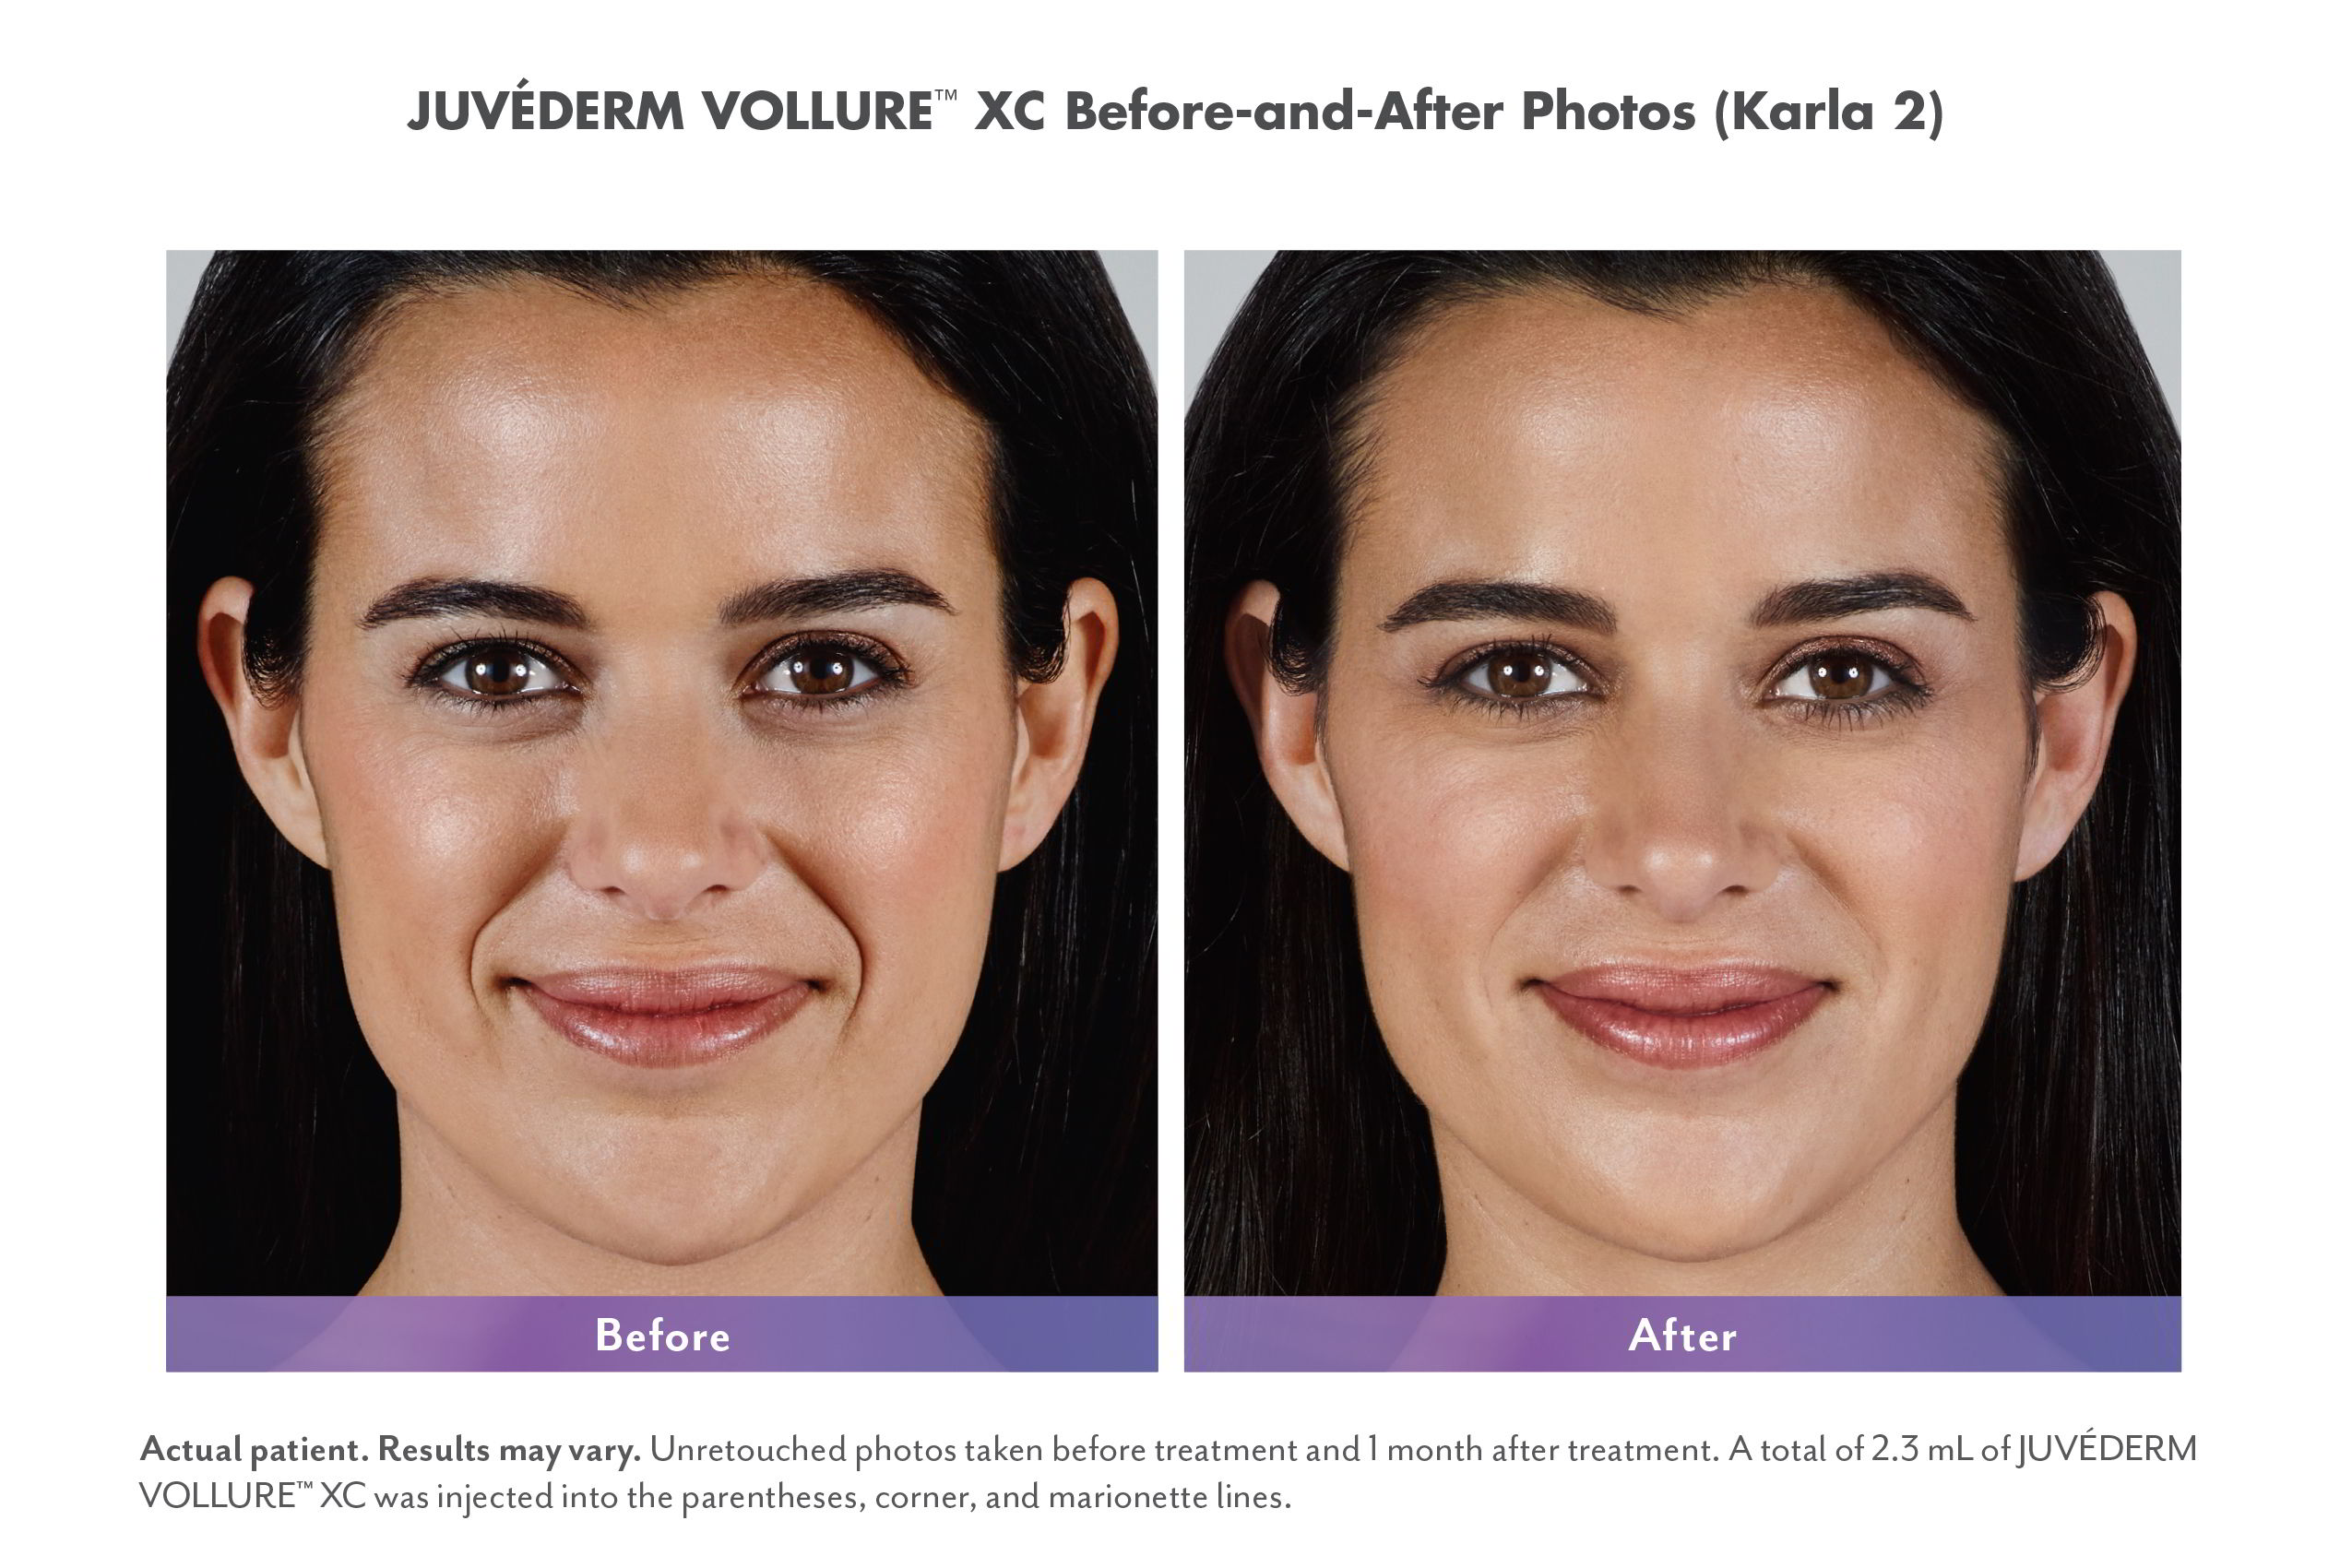 Juvederm Vollure XC Injectable Fillers Before & Afters